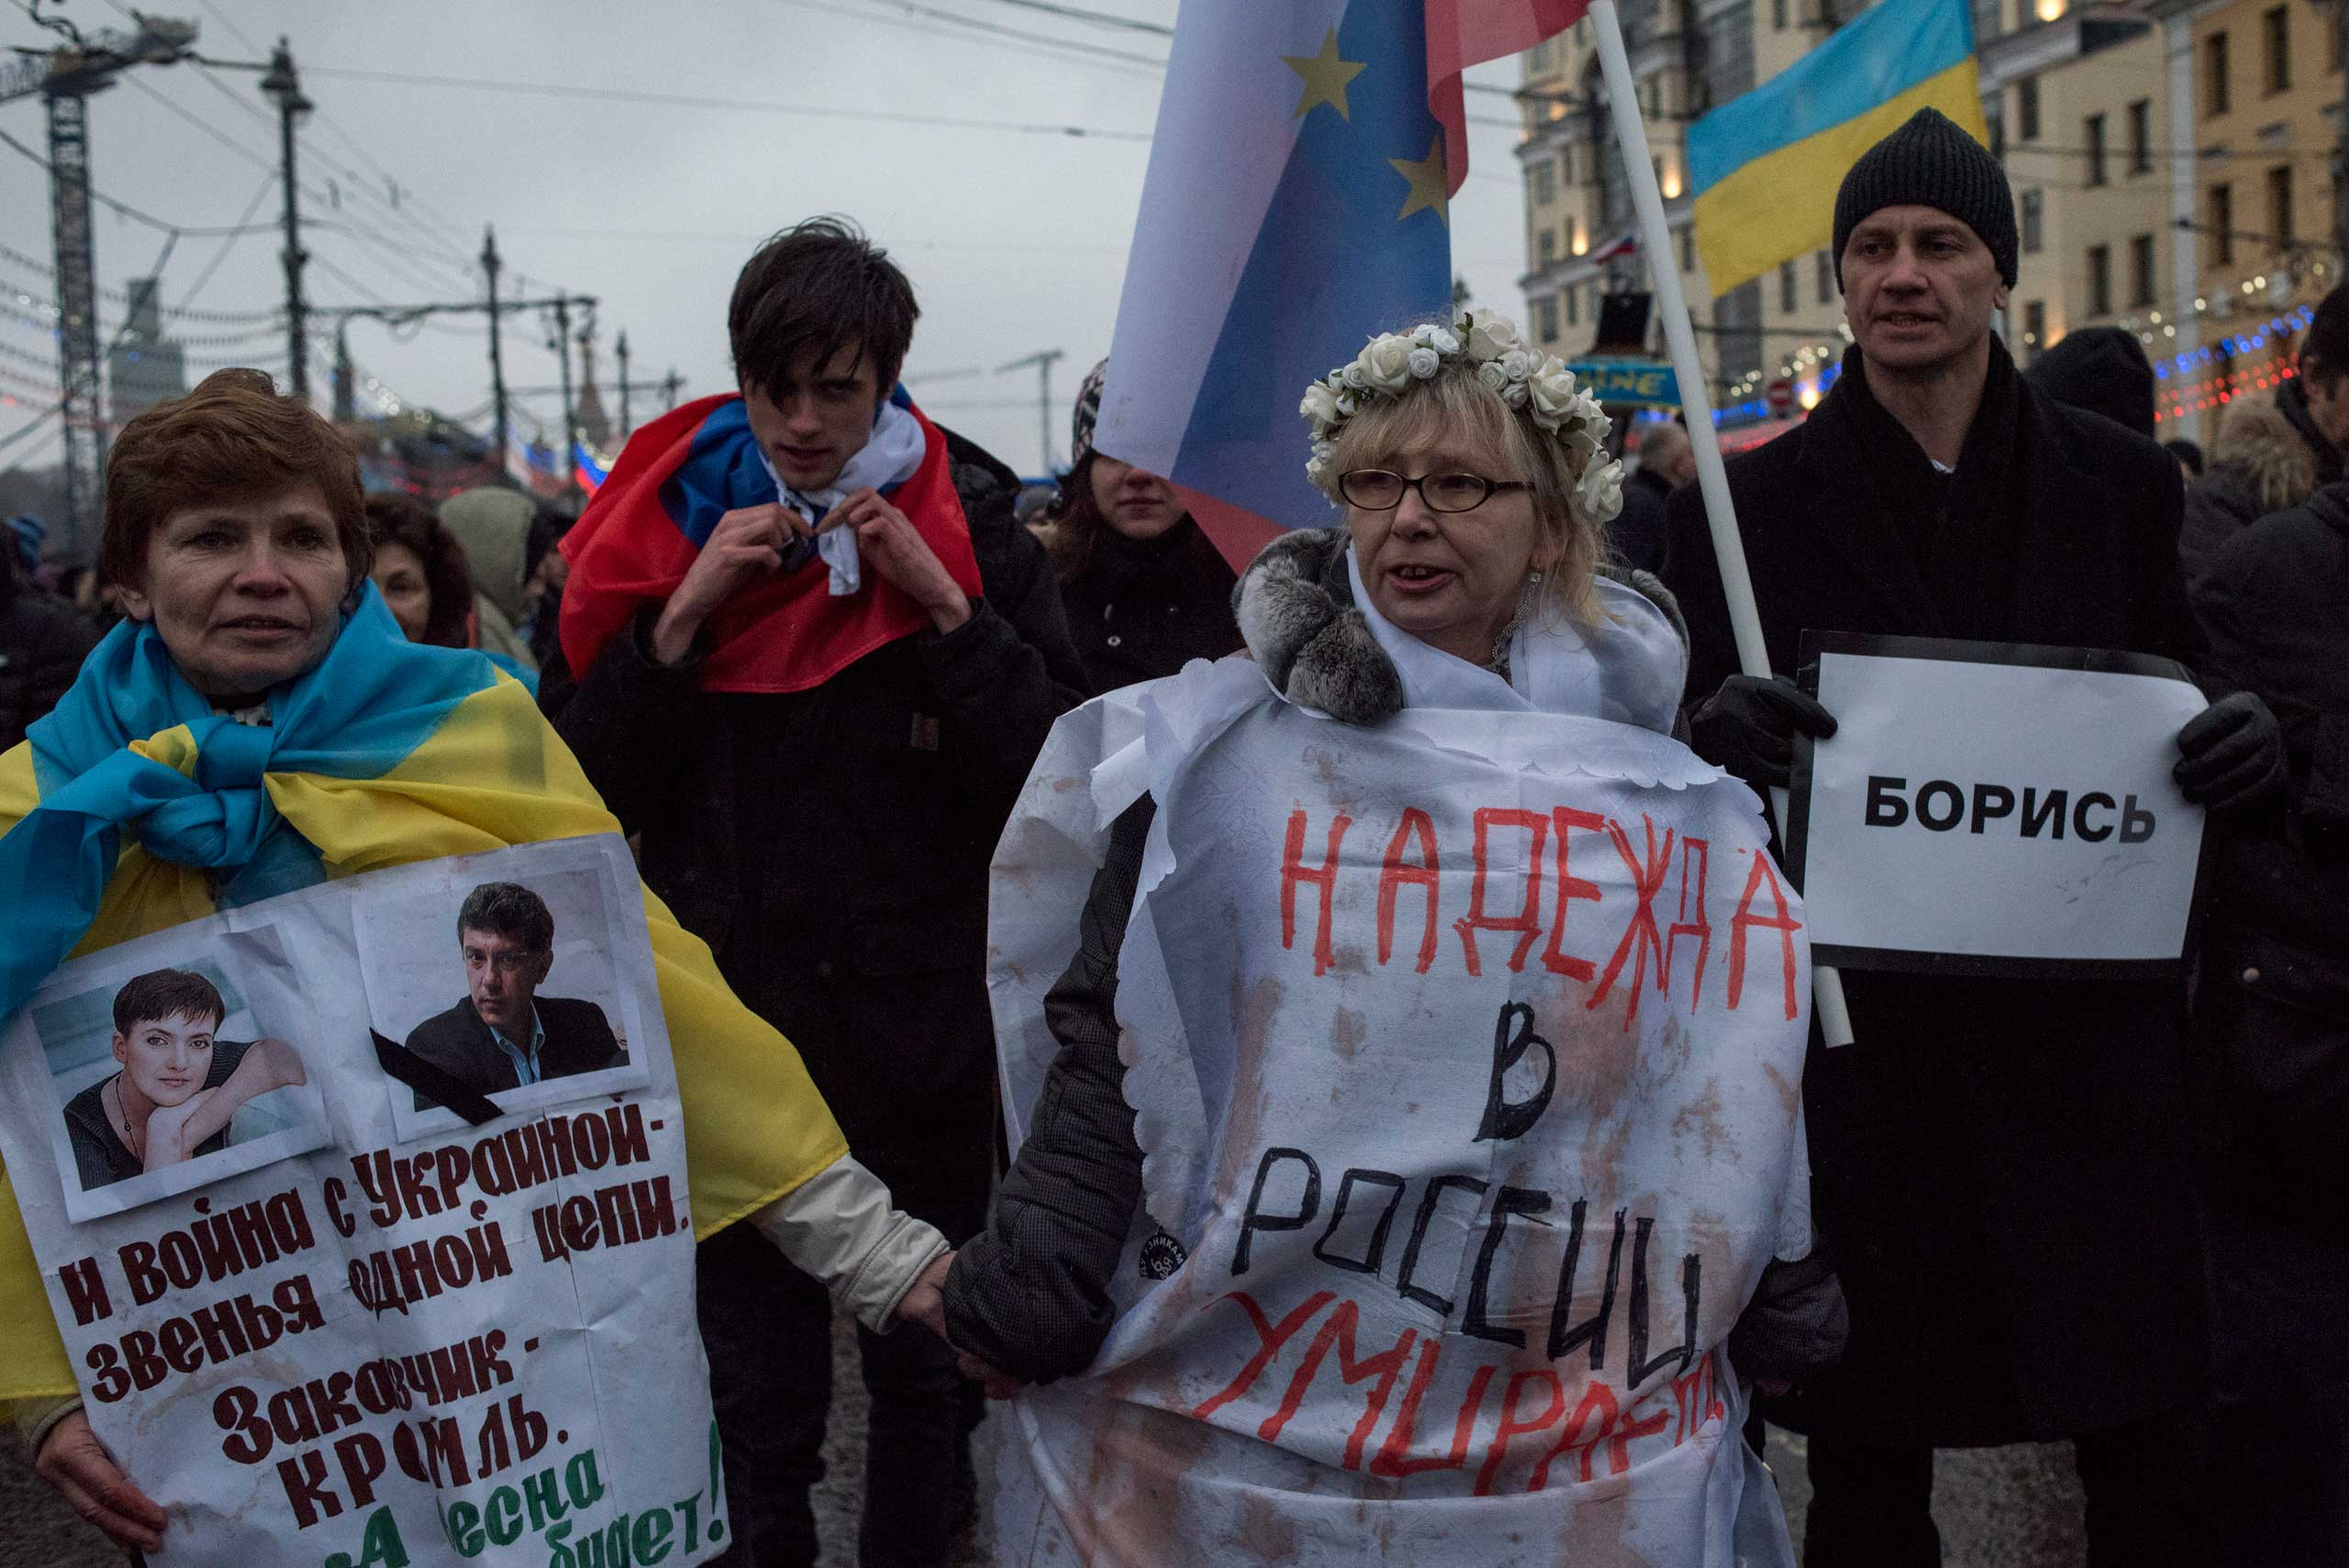 People gathered on the streets of Moscow  carrying pictures and banners in support of  Boris Nemtsov during the march in Moscow on March 1, 2015.